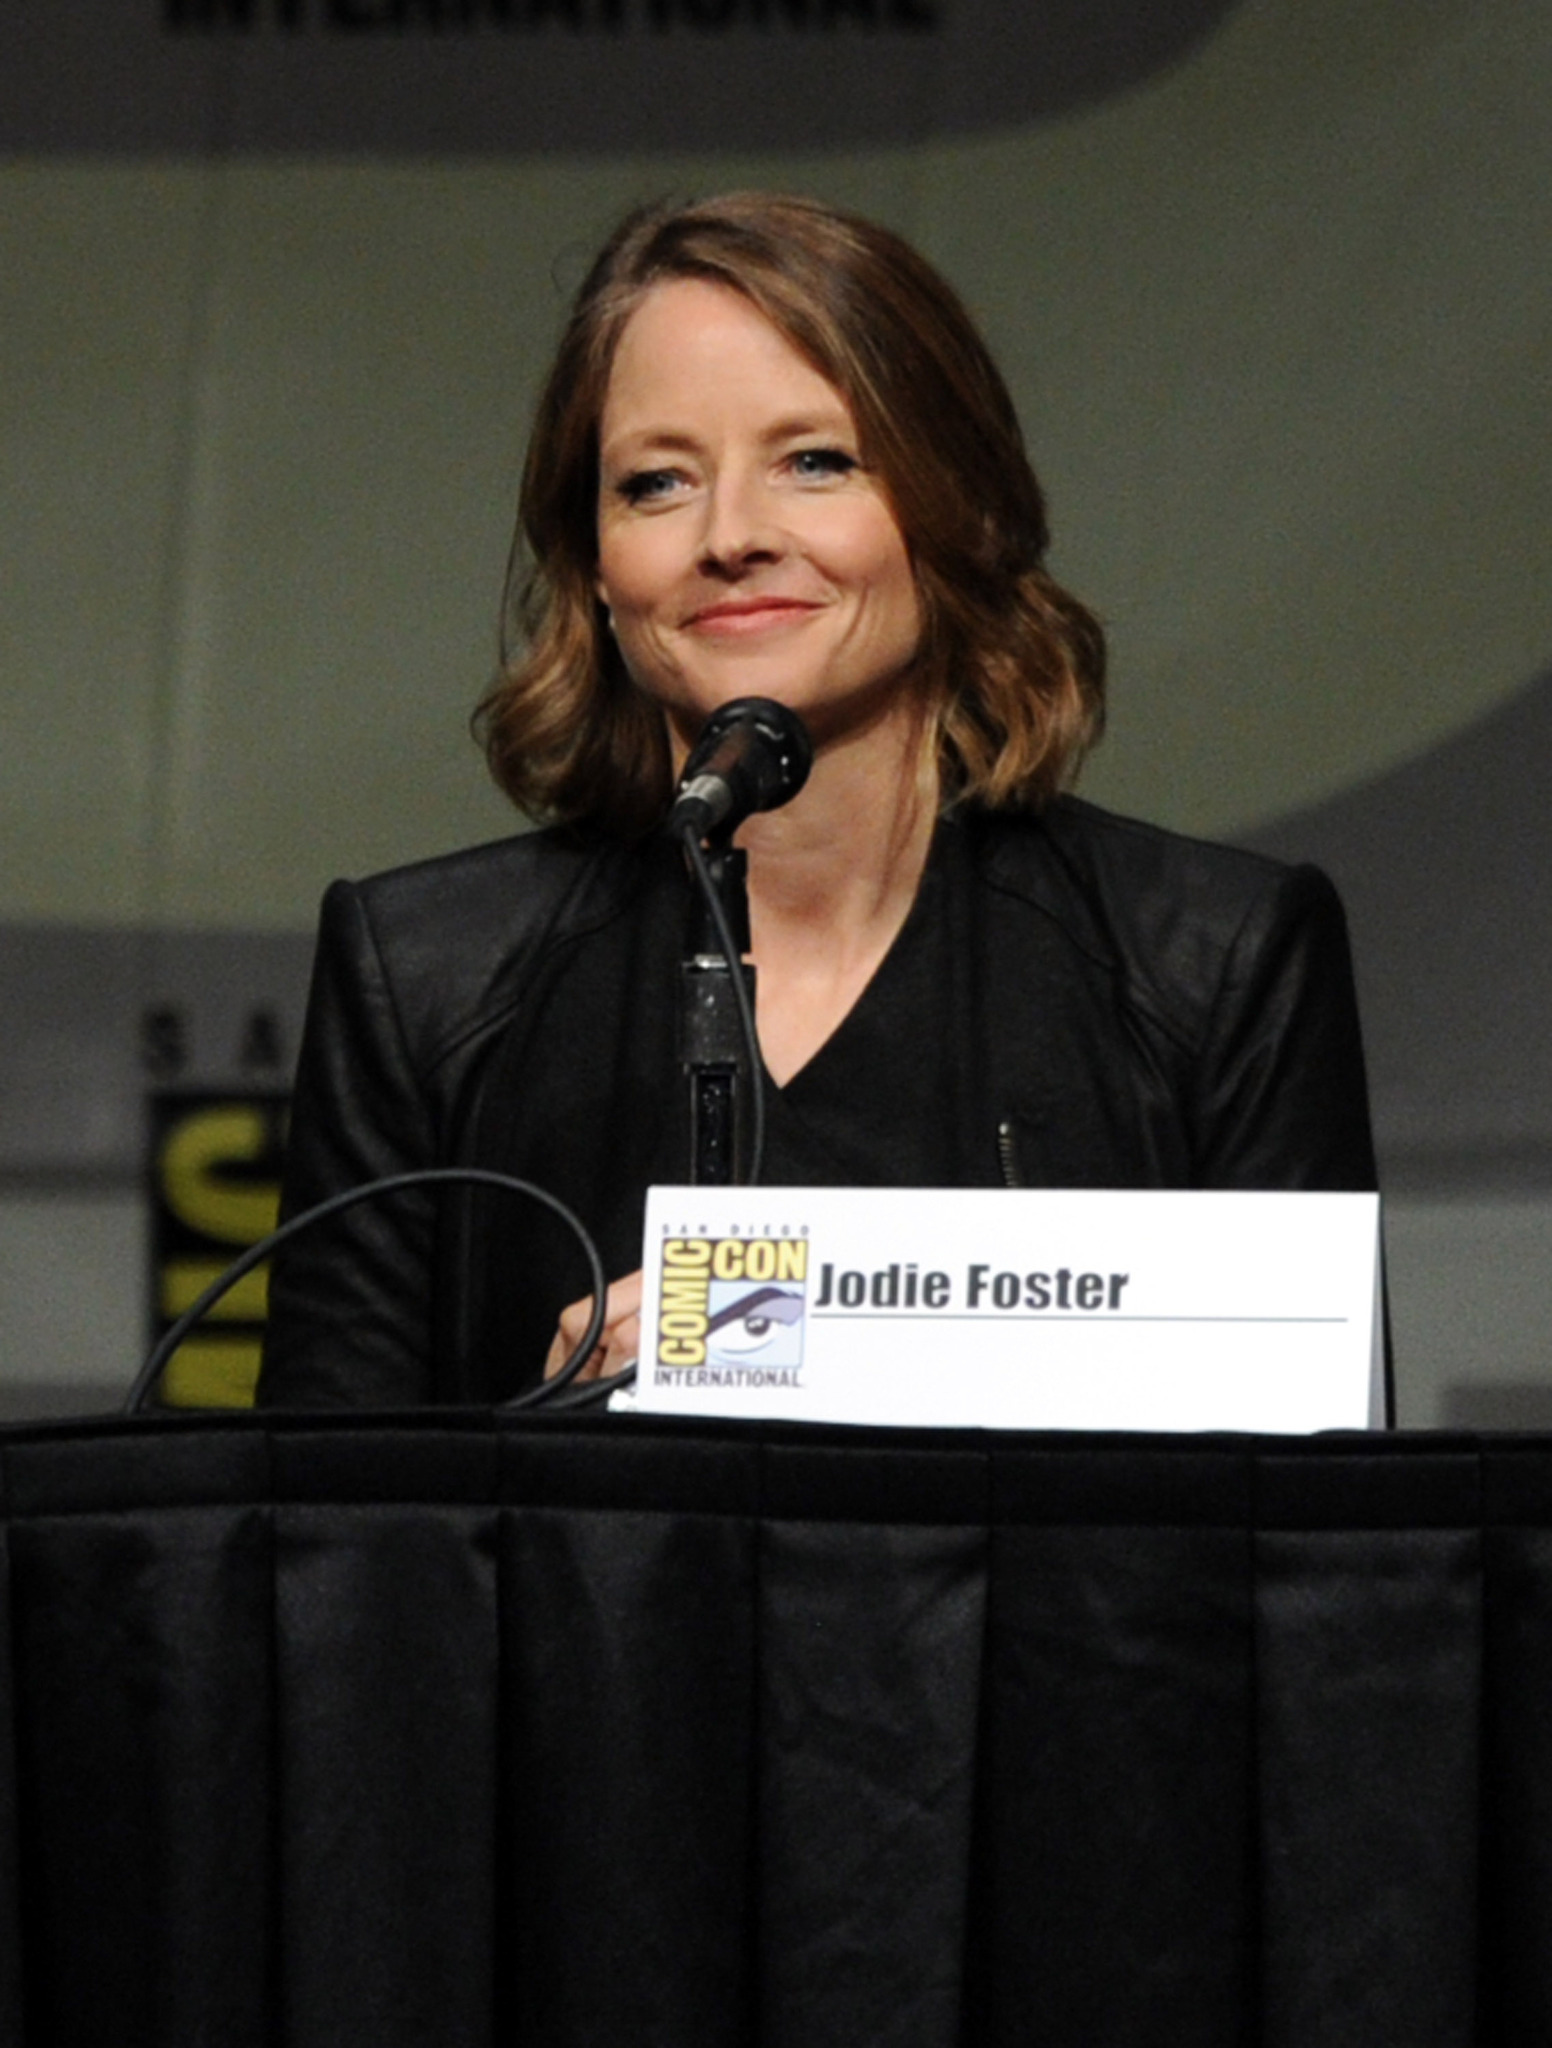 Jodie Foster at an event for Elysium (2013)